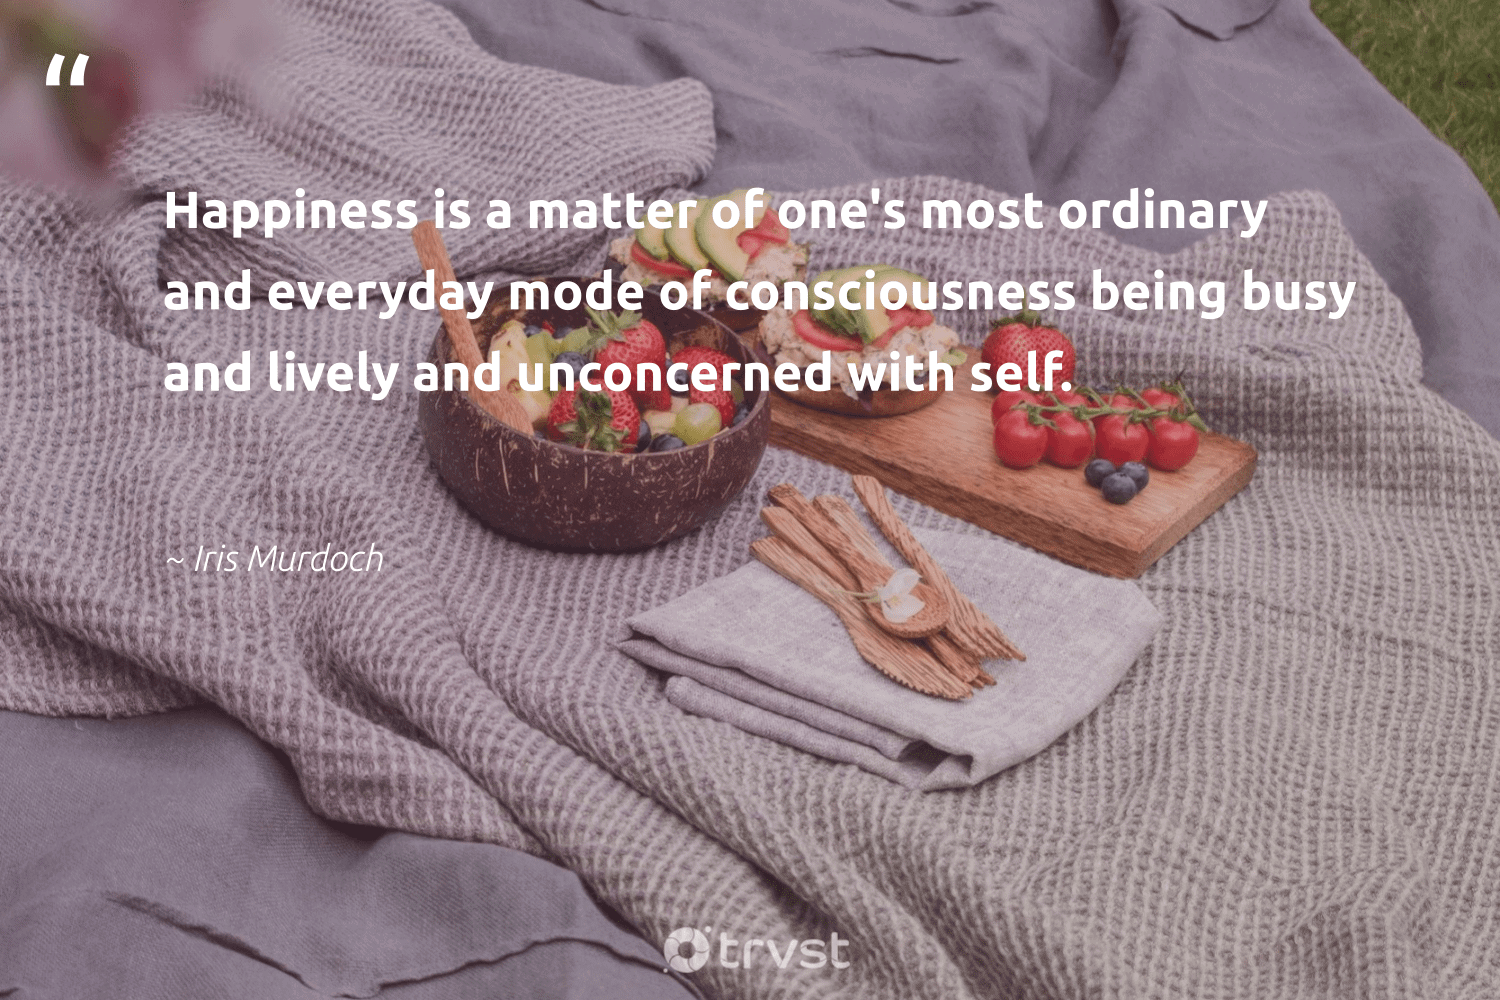 """""""Happiness is a matter of one's most ordinary and everyday mode of consciousness being busy and lively and unconcerned with self.""""  - Iris Murdoch #trvst #quotes #happiness #consciousness #nevergiveup #ecoconscious #mindset #changetheworld #health #thinkgreen #changemakers #bethechange"""